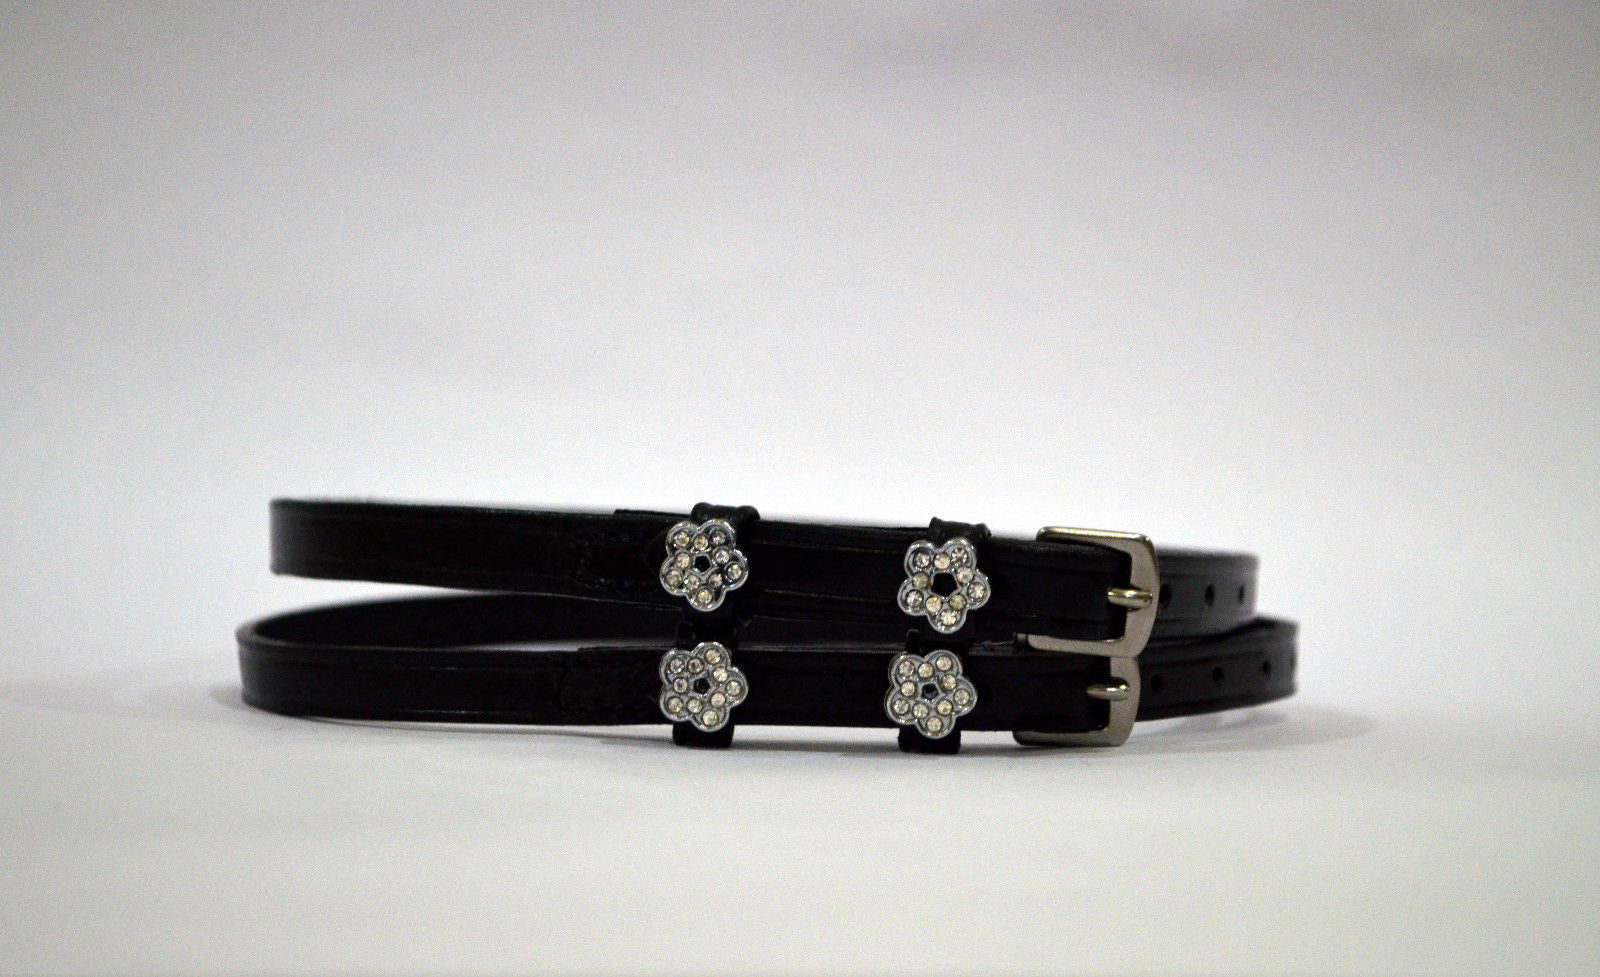 New Flower Leather Spur Strap for boots - English Spur Straps SIE